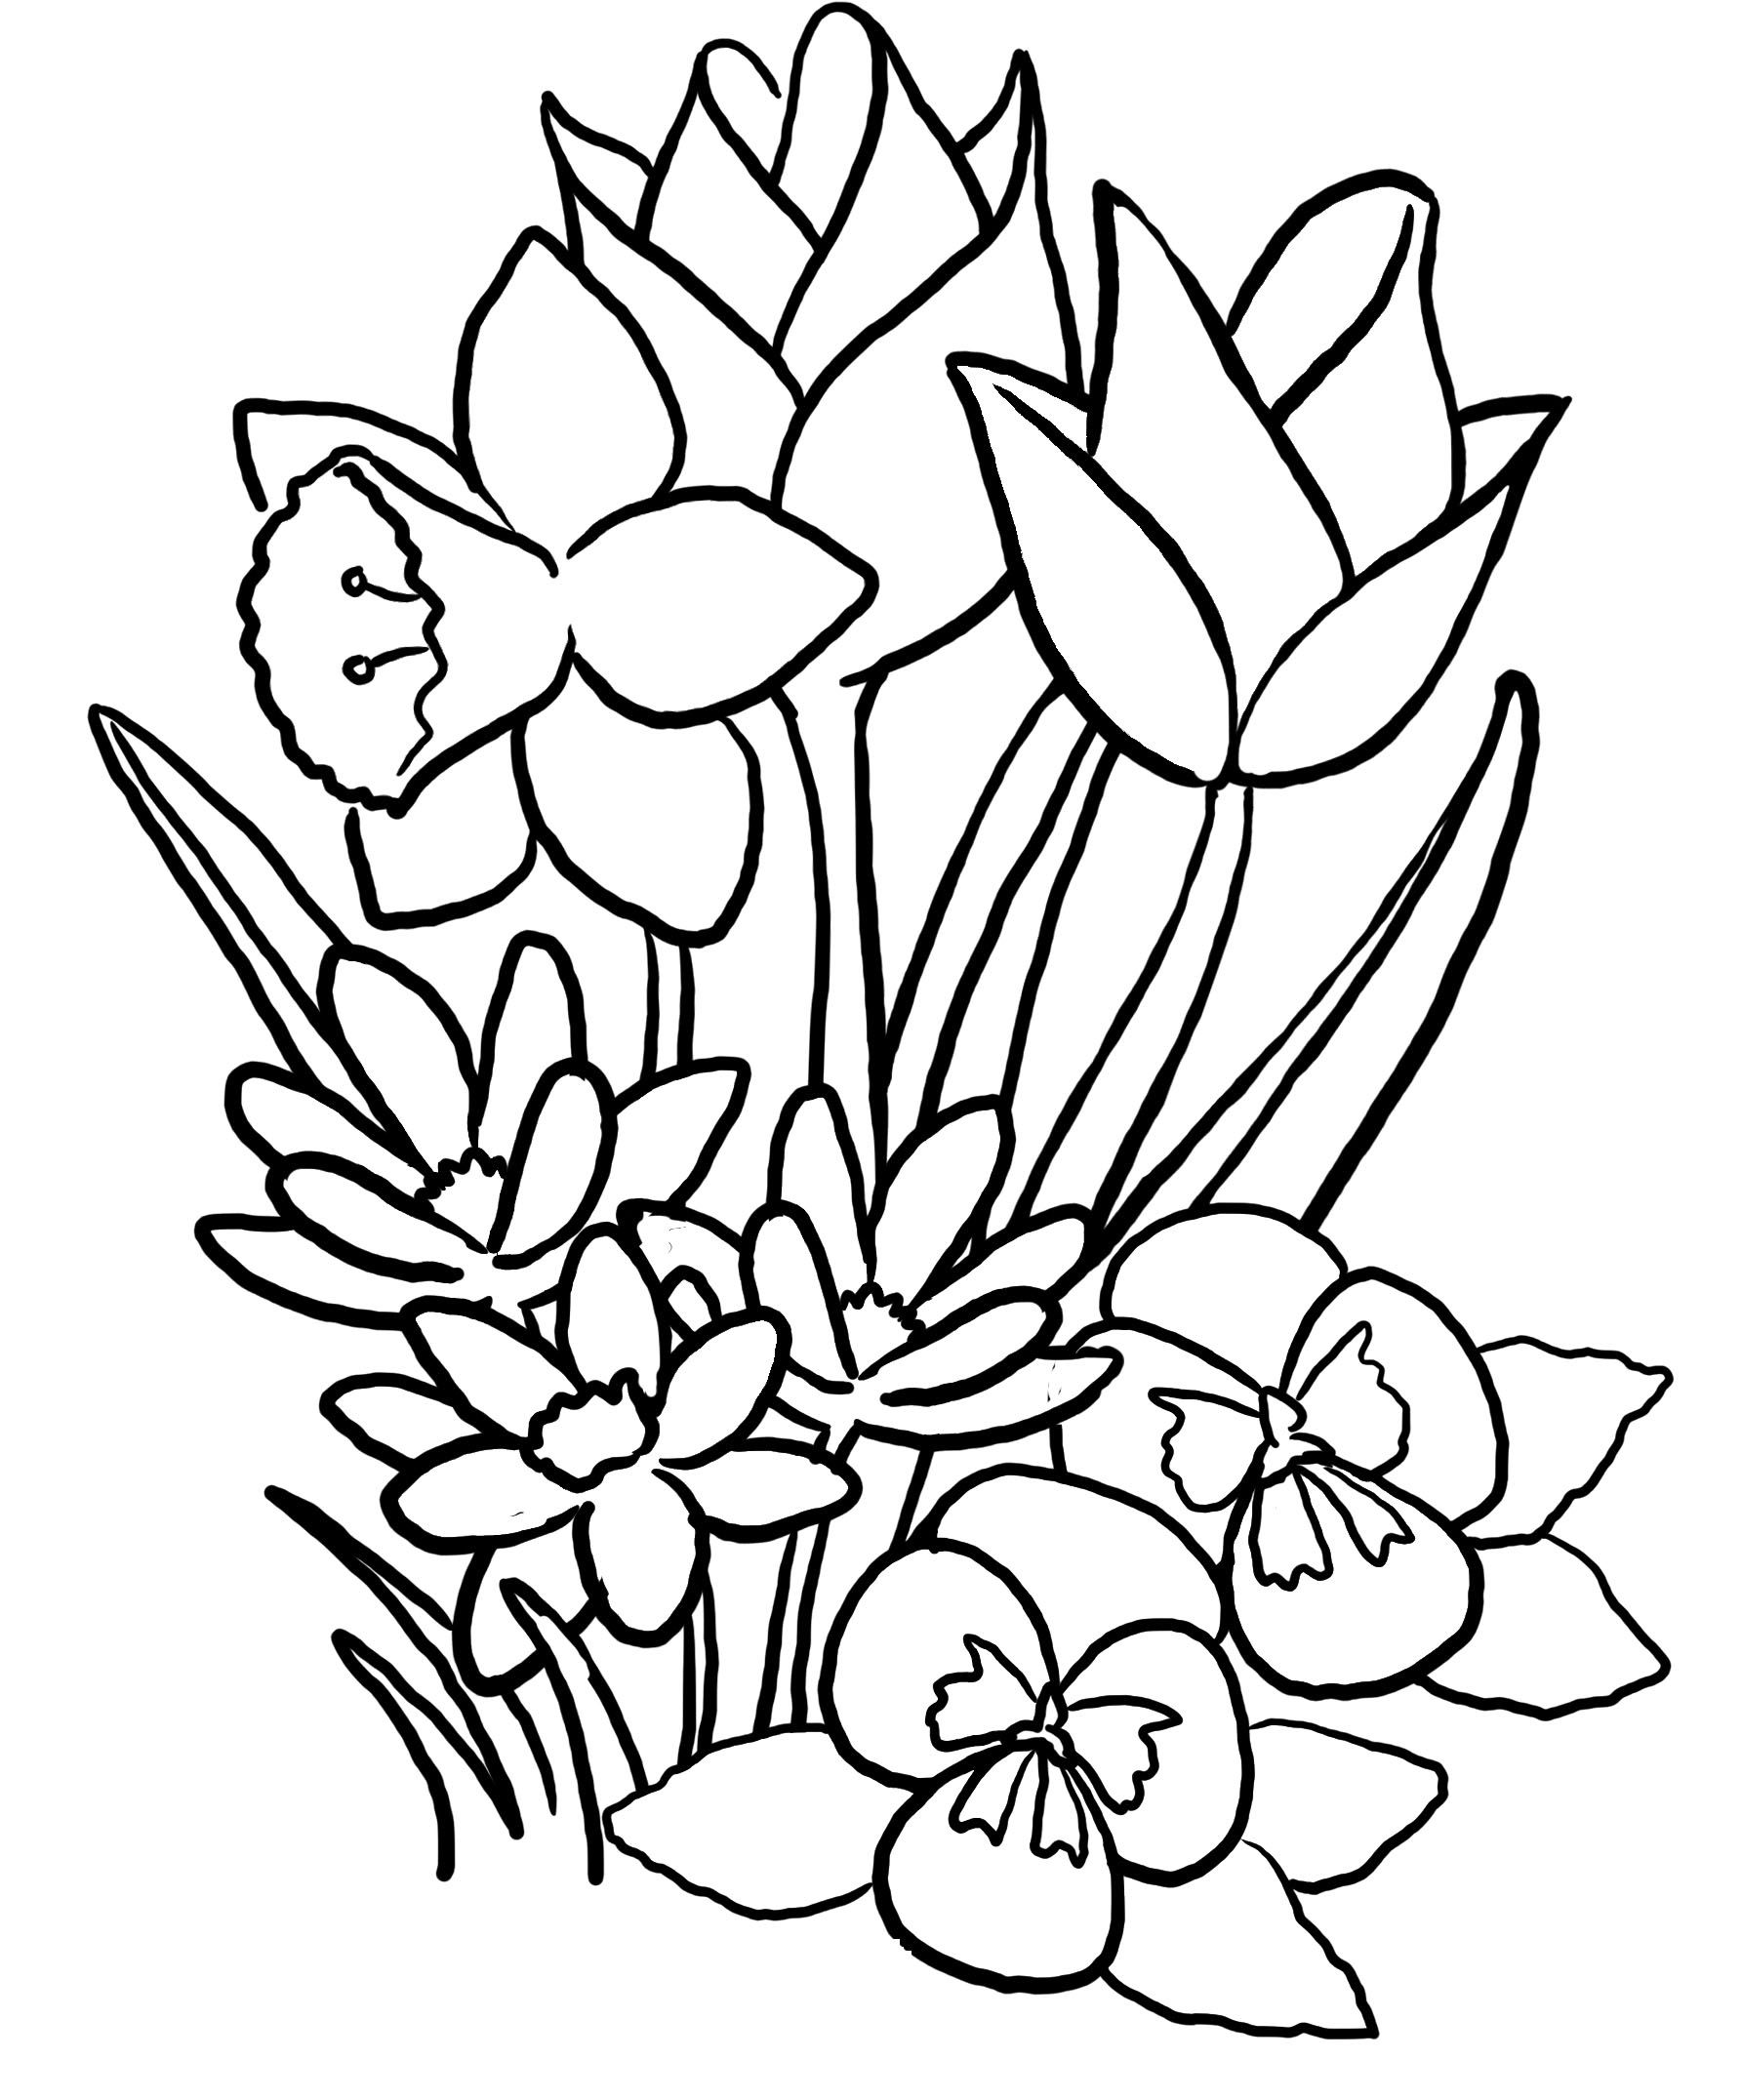 coloring tulip template tulip flower coloring pages at getdrawings free download tulip coloring template